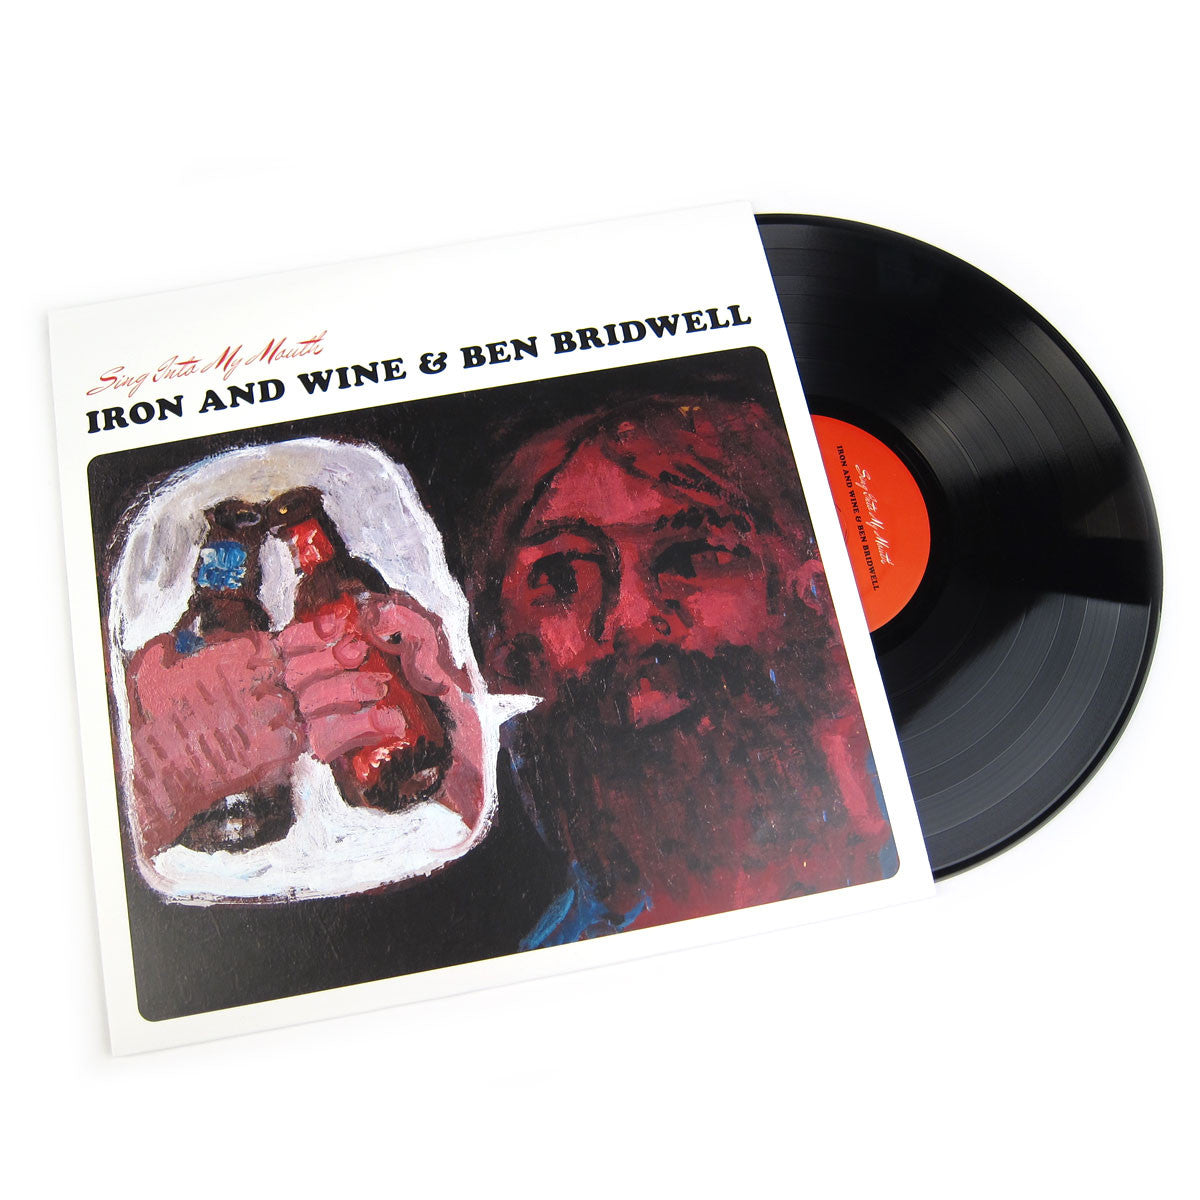 Iron And Wine & Ben Bridwell: Sing Into My Mouth Vinyl LP